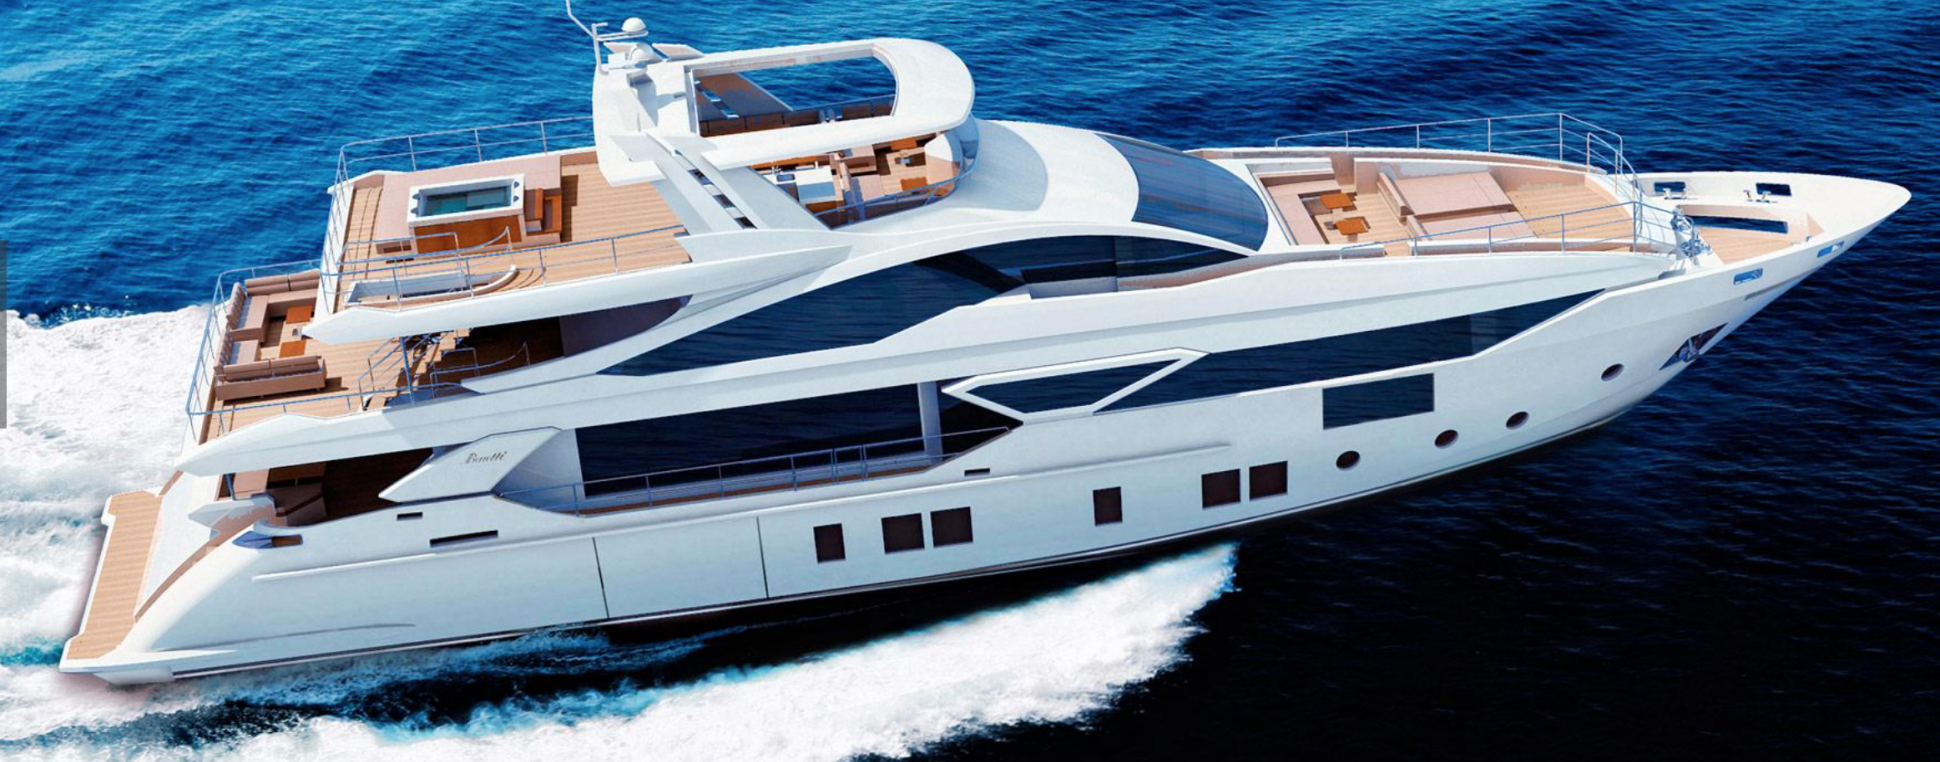 Luxury and super yachts